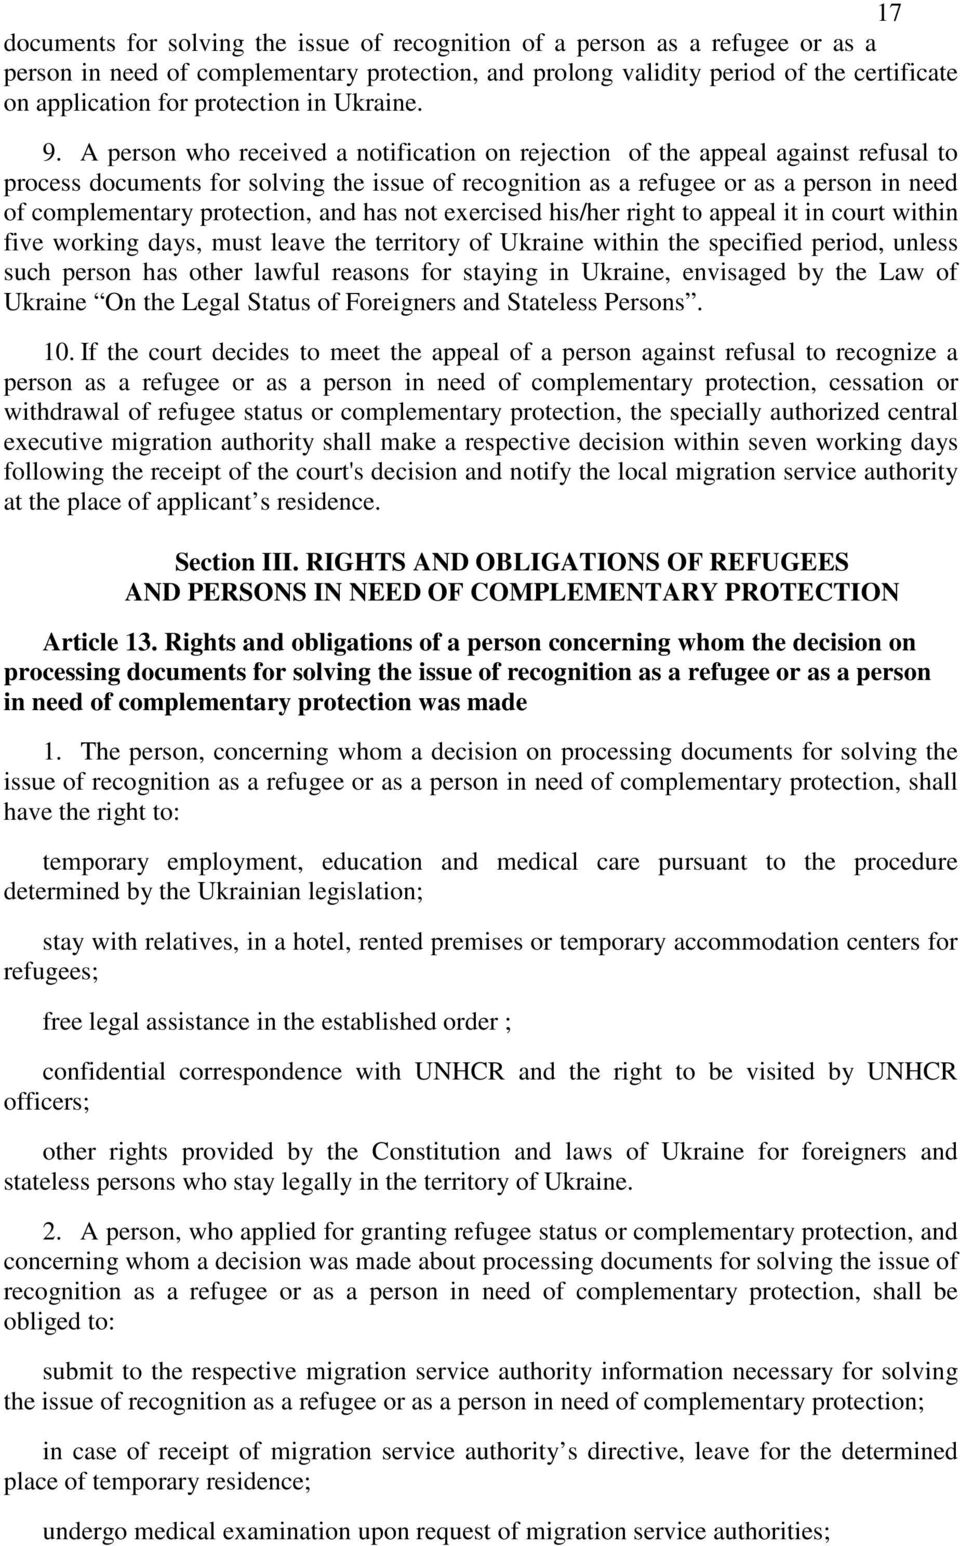 A person who received a notification on rejection of the appeal against refusal to process documents for solving the issue of recognition as a refugee or as a person in need of complementary